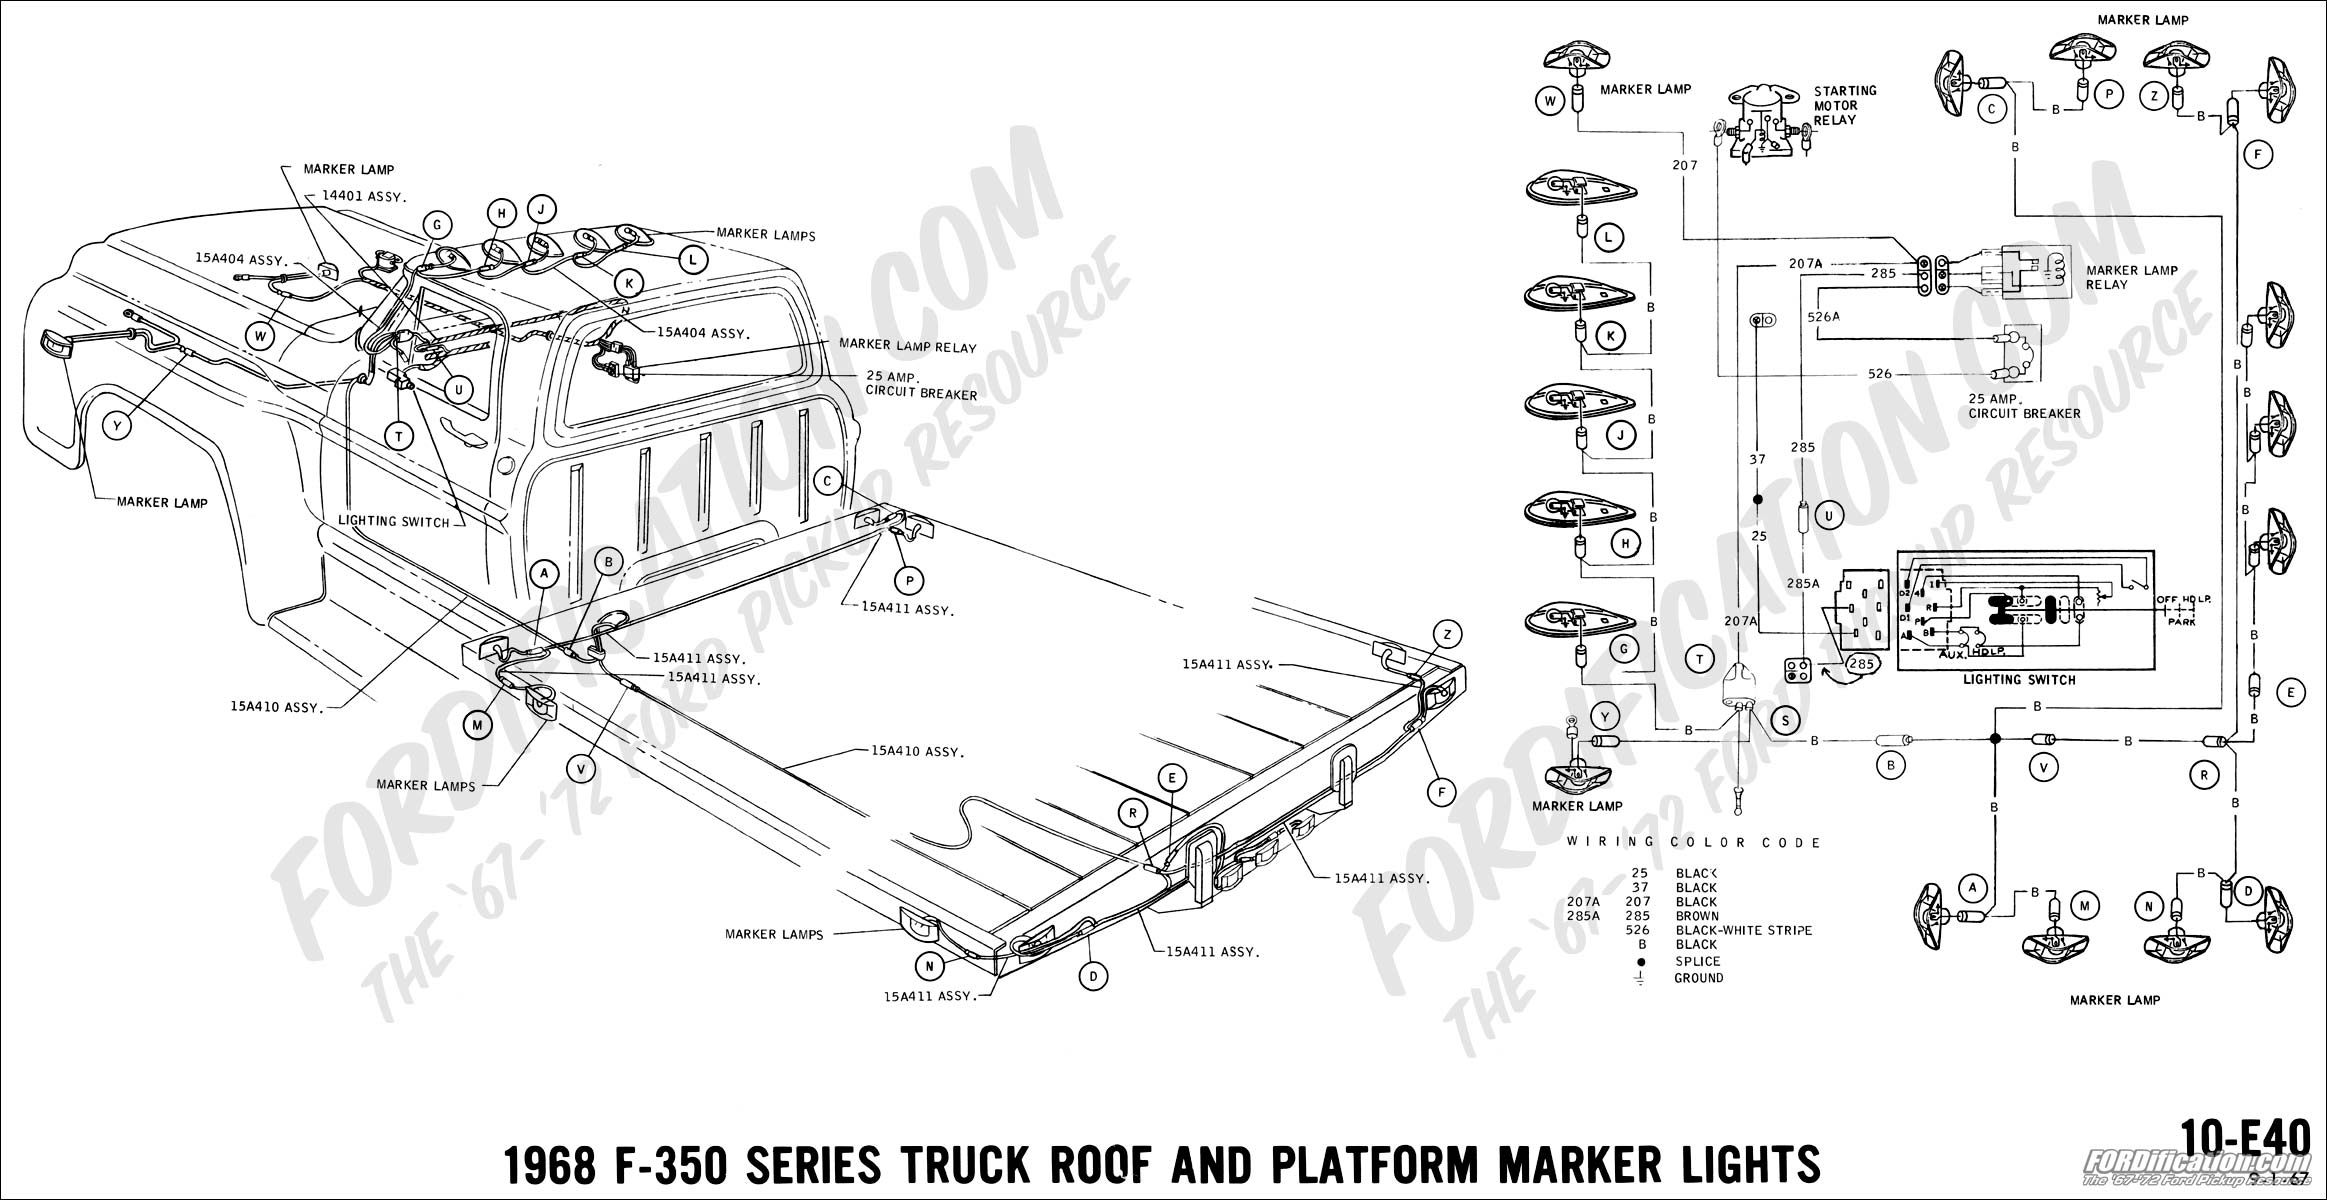 68 42 ford truck technical drawings and schematics section h wiring Peterbilt Truck Wiring Schematics at creativeand.co